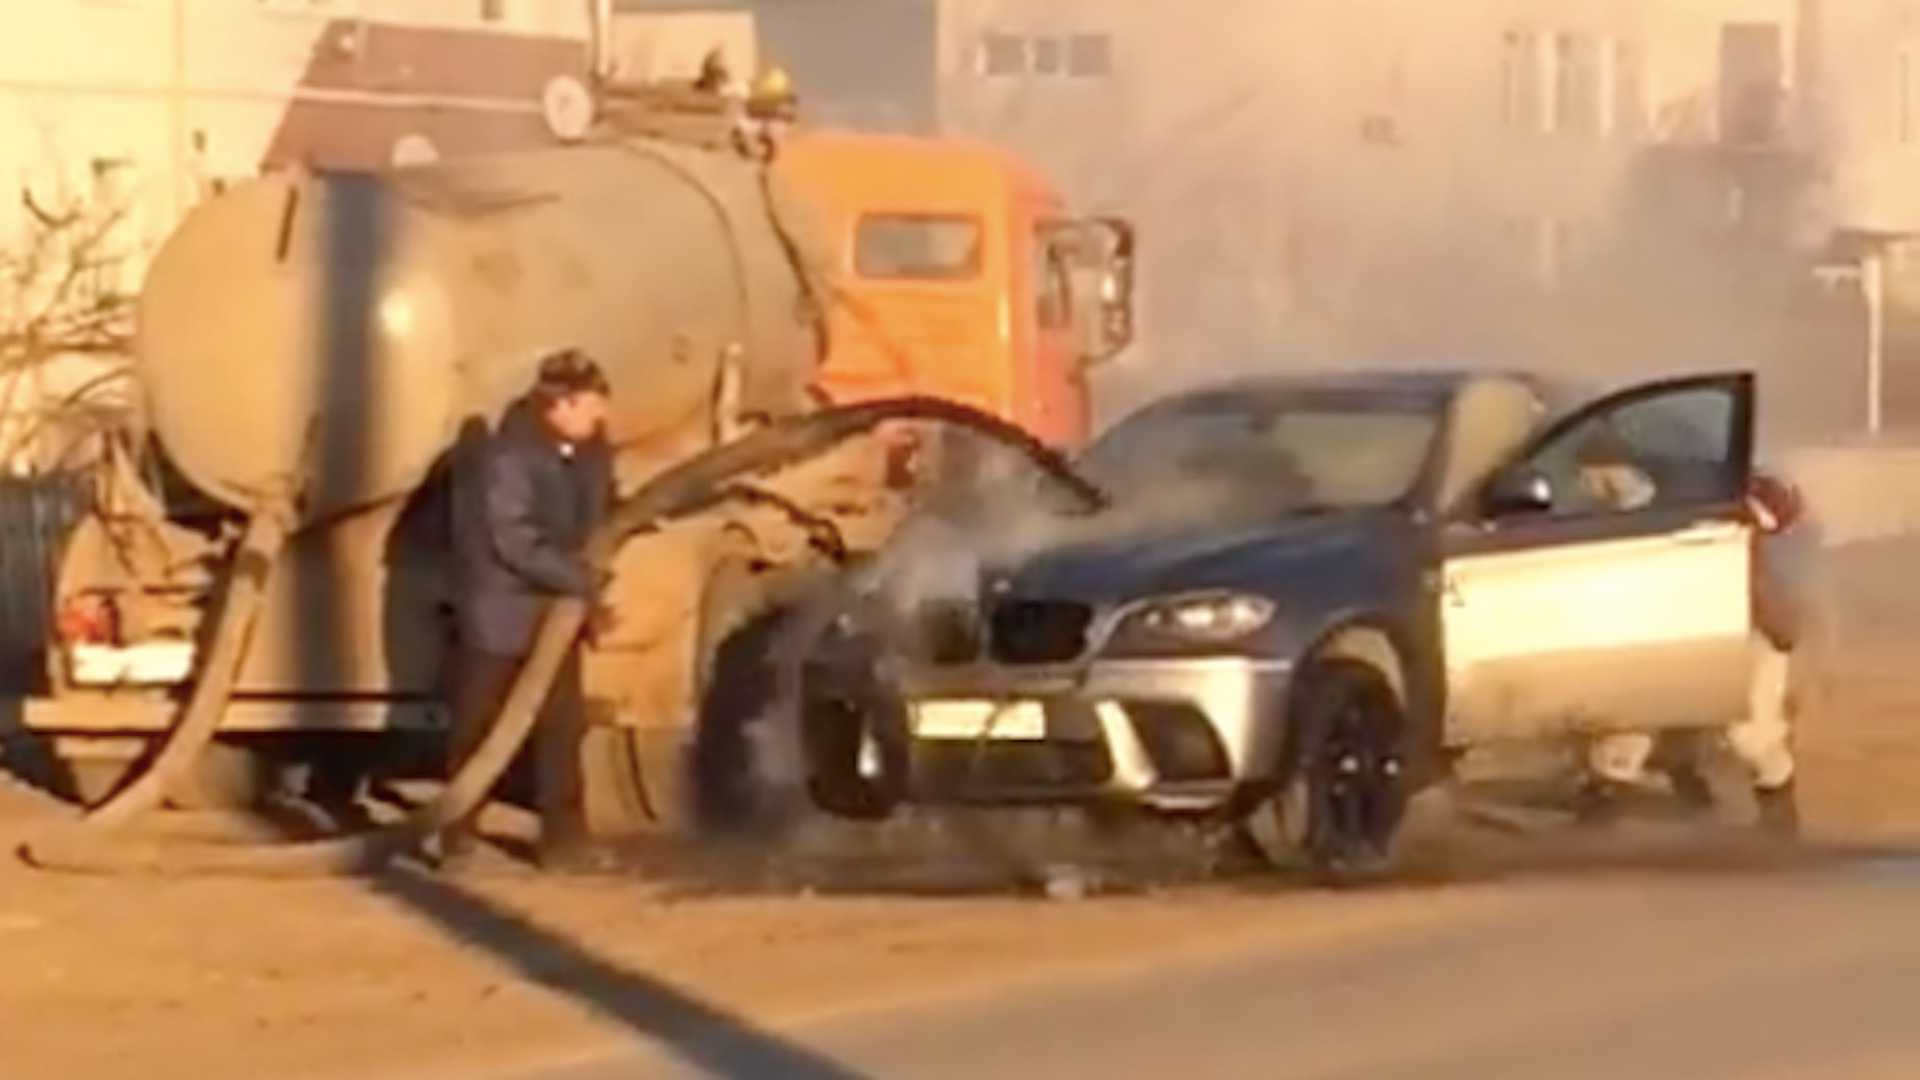 BMW Saved From Being Engulfed In Flames By Septic Truck's Poo Hose